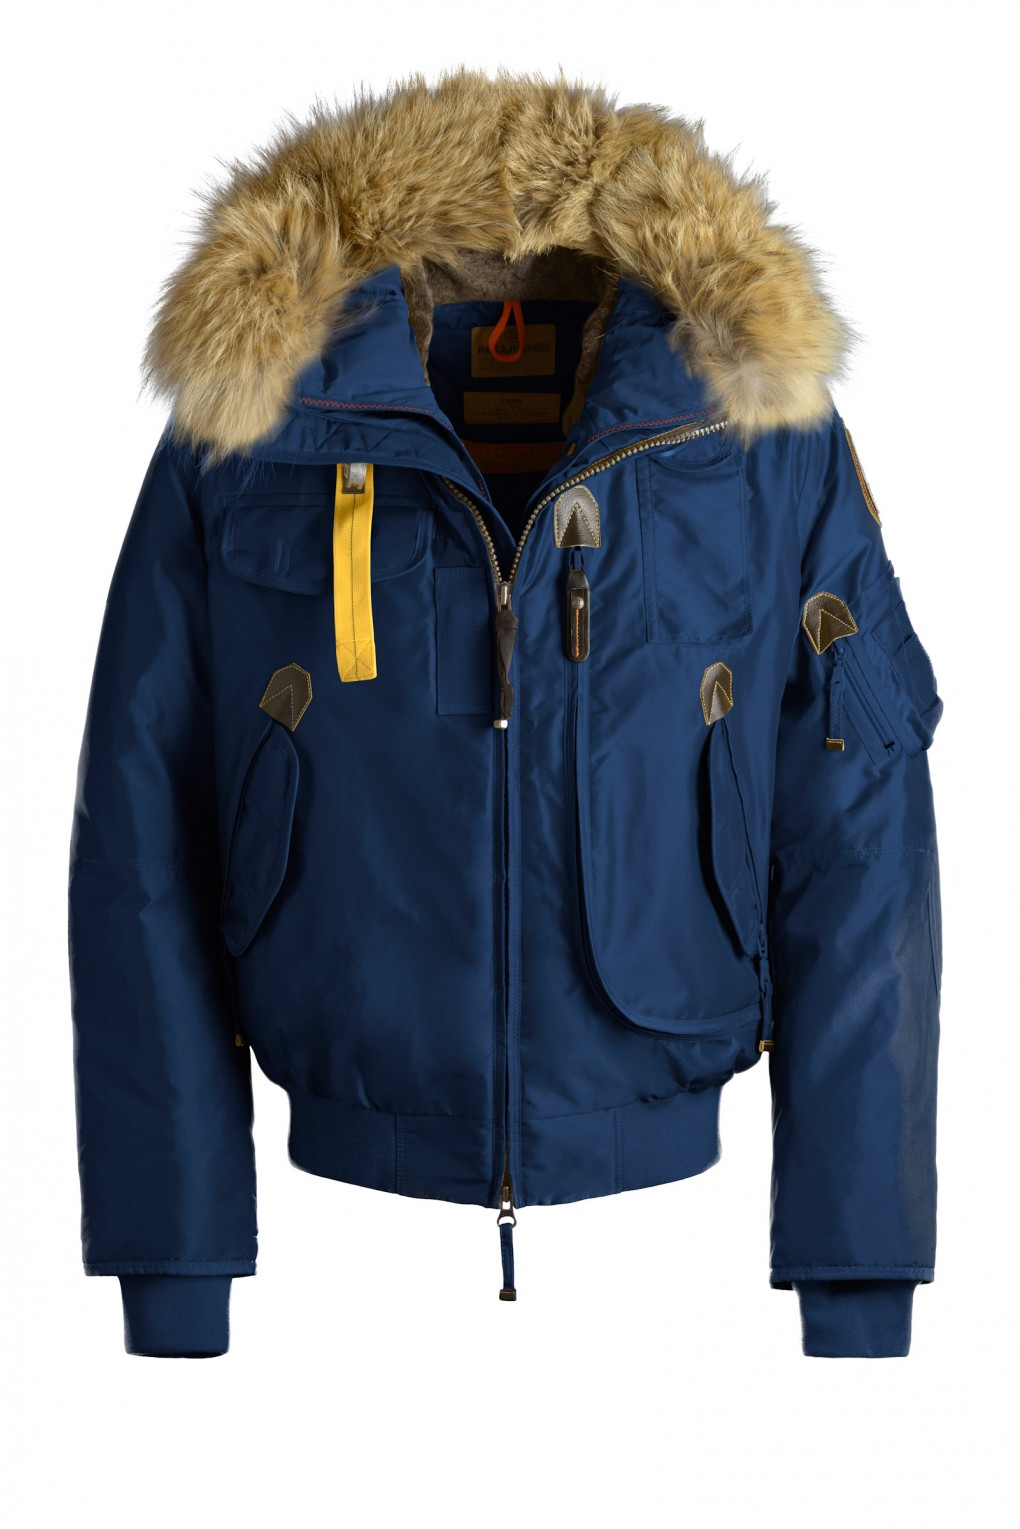 parajumpers GOBI man outerwear Royal